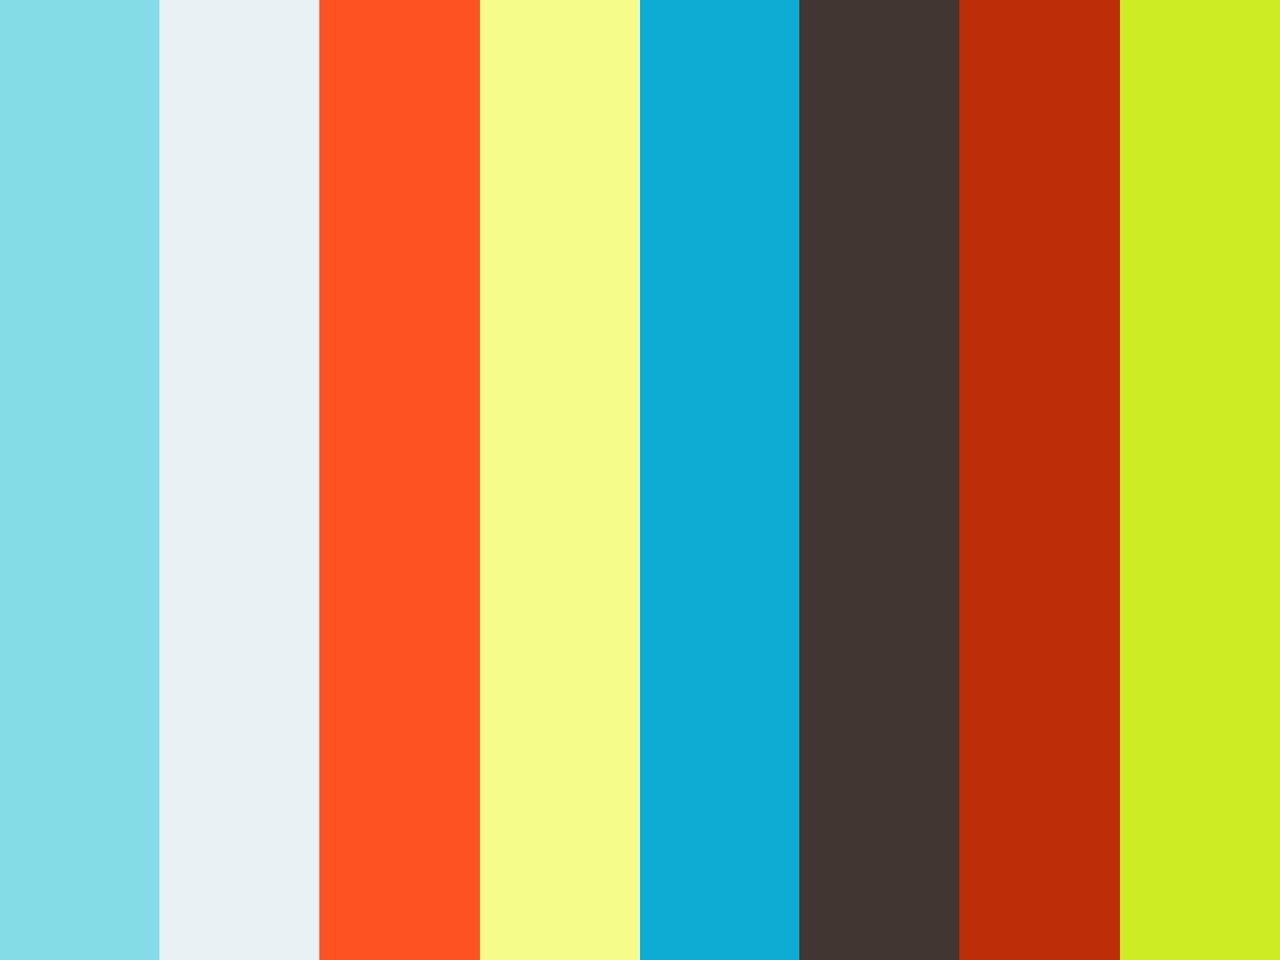 Understanding Our Times | May 27, 2018 | Tag Kilgore